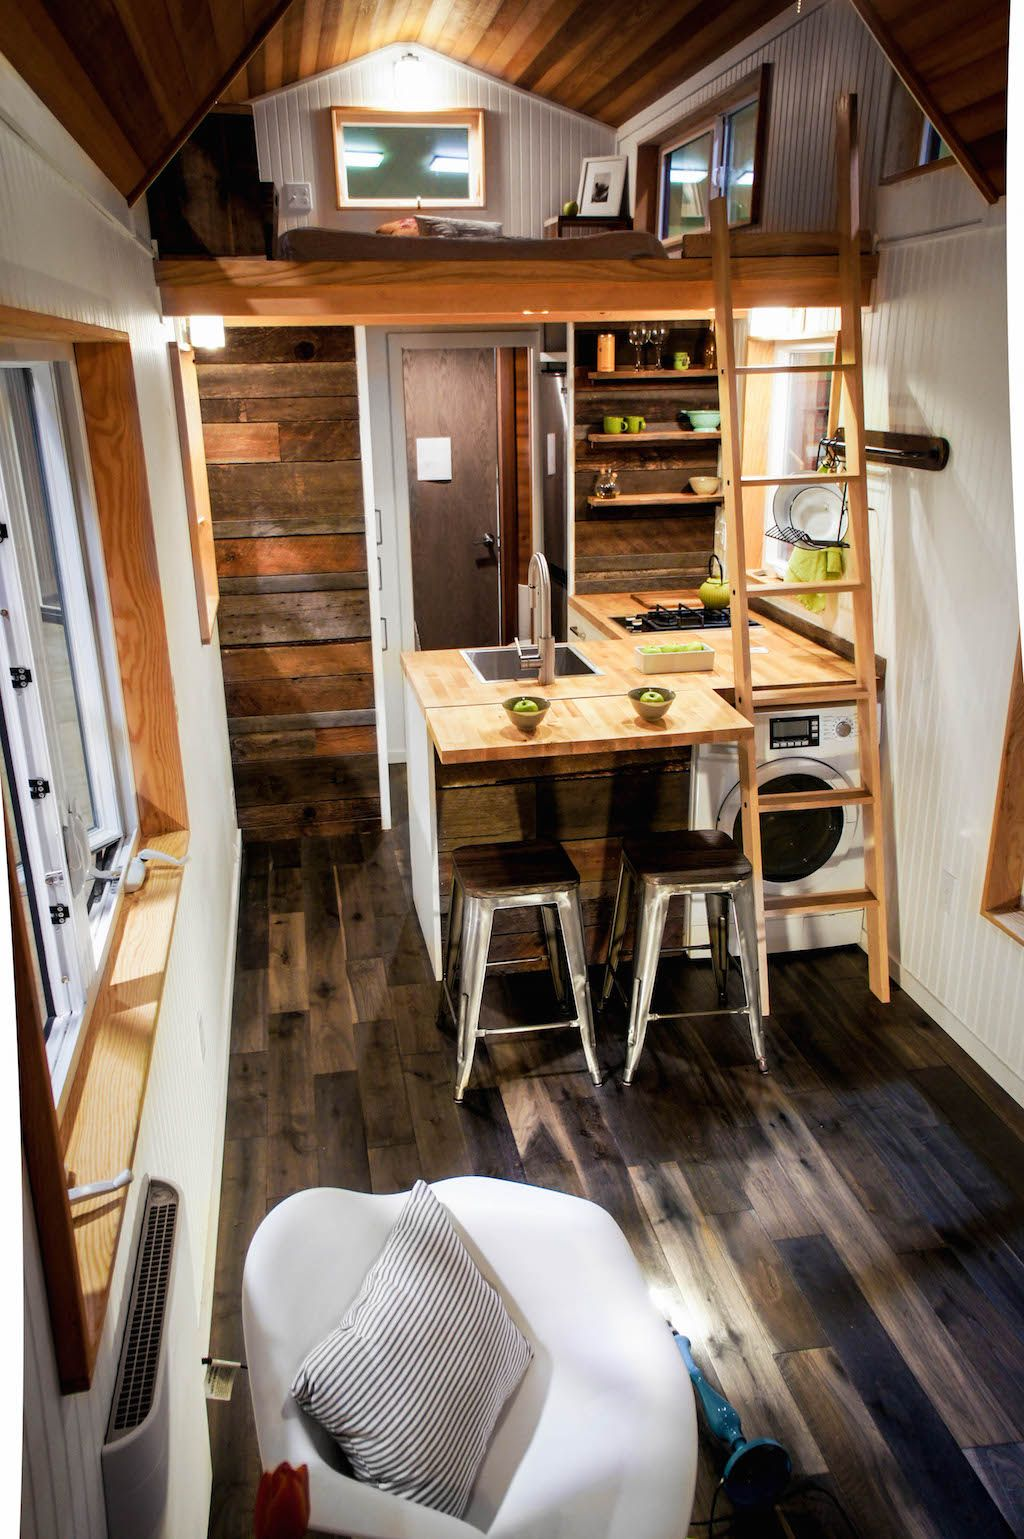 View toward kitchen the alpha tiny home by new frontier tiny homes -  Tumbleweed Tinyhouses Tinyhome Tinyhouseplans A Custom 240 Square Feet Tiny House On